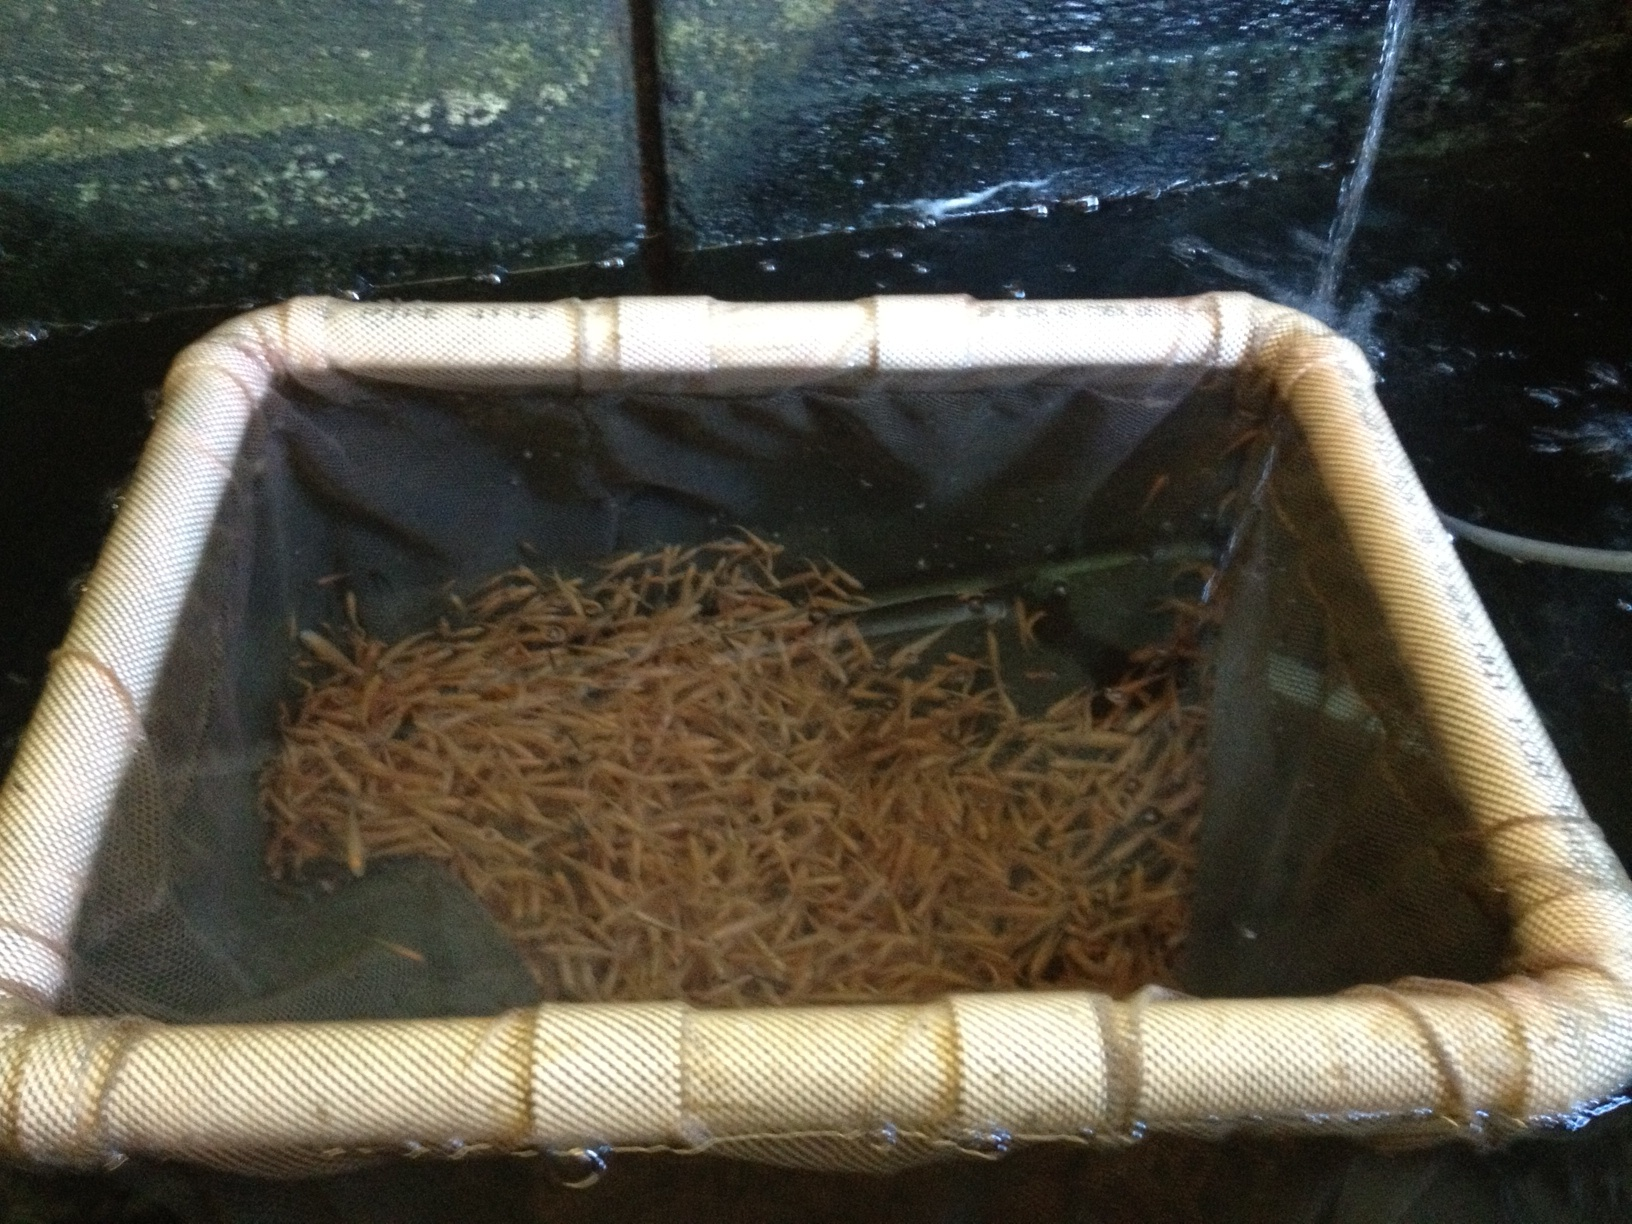 minnows (rosey reds) in the fish house